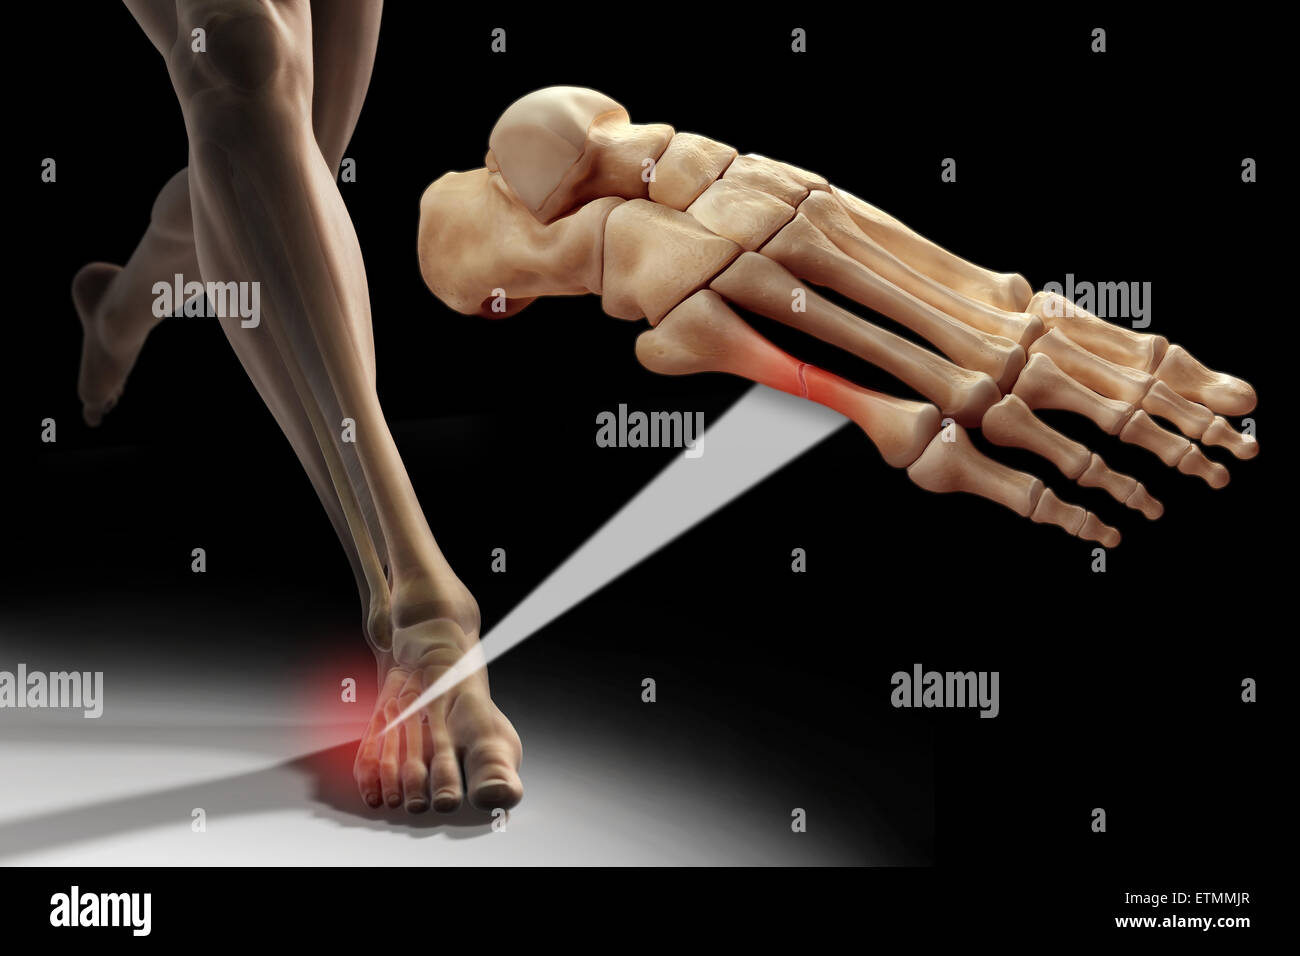 Illustration Showing A Figure Running With The Bones Of The Foot